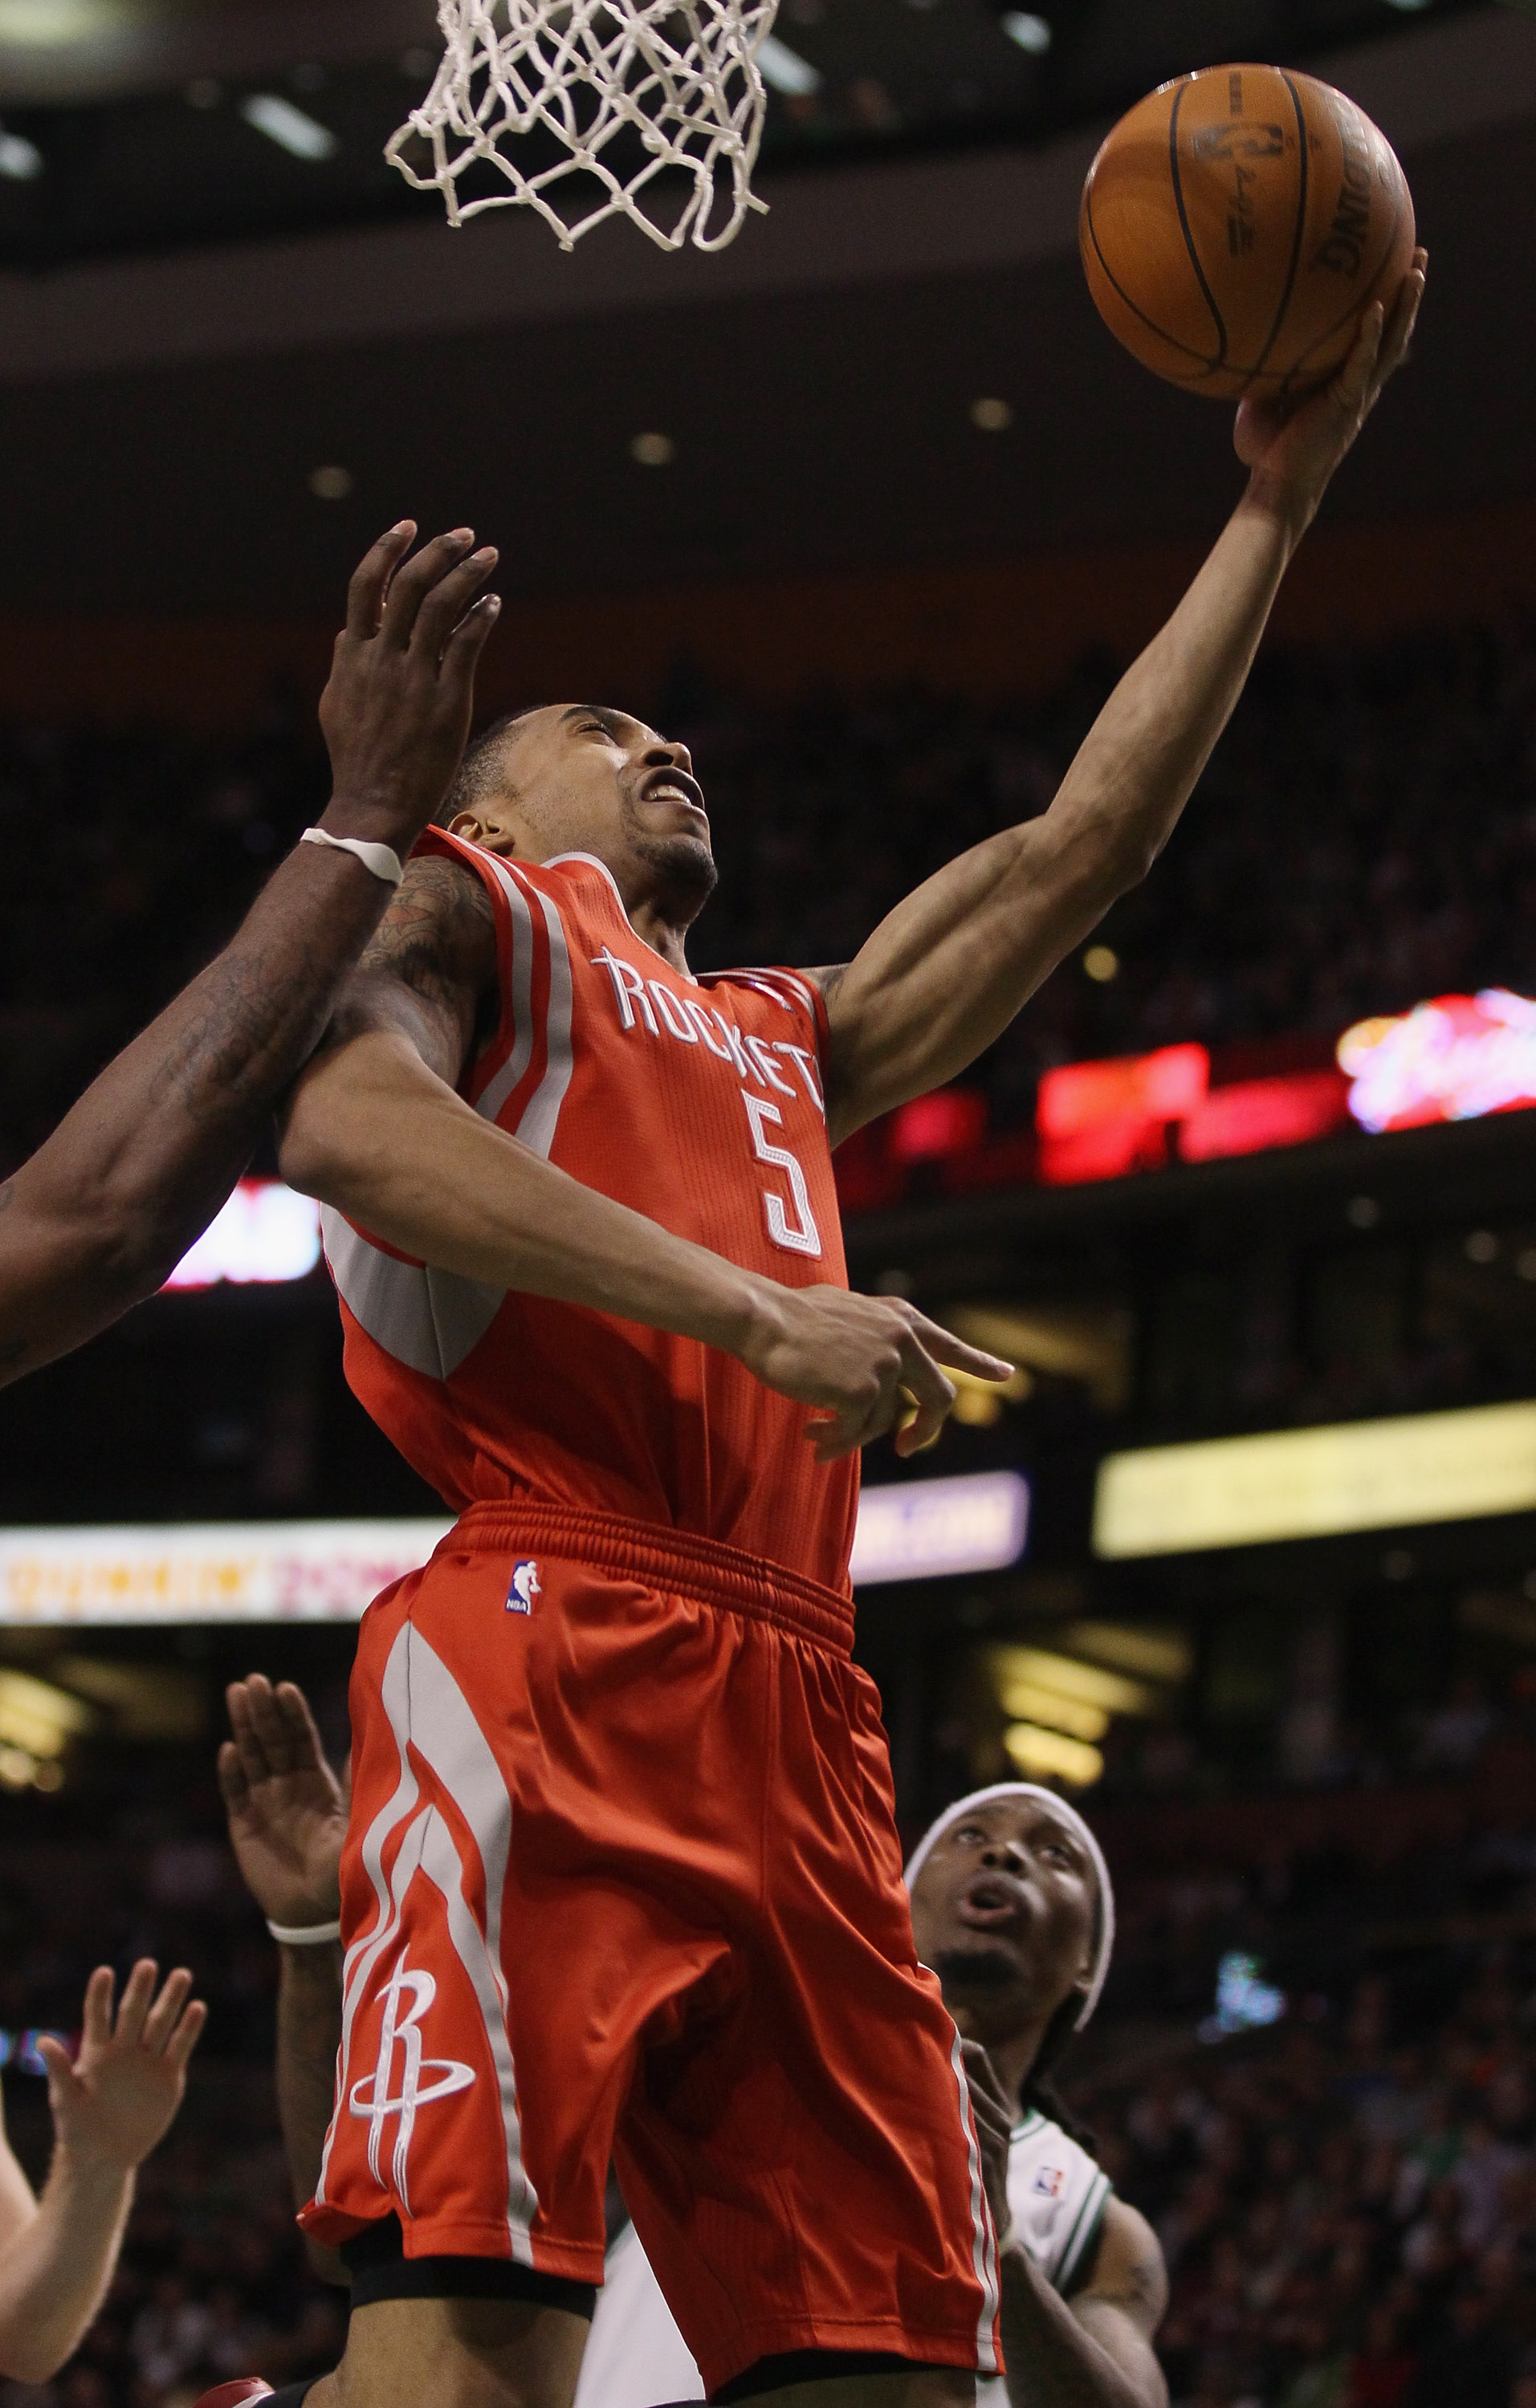 BOSTON, MA - JANUARY 10:  Courtney Lee #5 of the Houston Rockets takes a shot as Marquis Daniels #8 of the Boston Celtics defends on January 10, 2011 at the TD Garden in Boston, Massachusetts.  The Rockets defeated the Celtics 108-102. NOTE TO USER: User